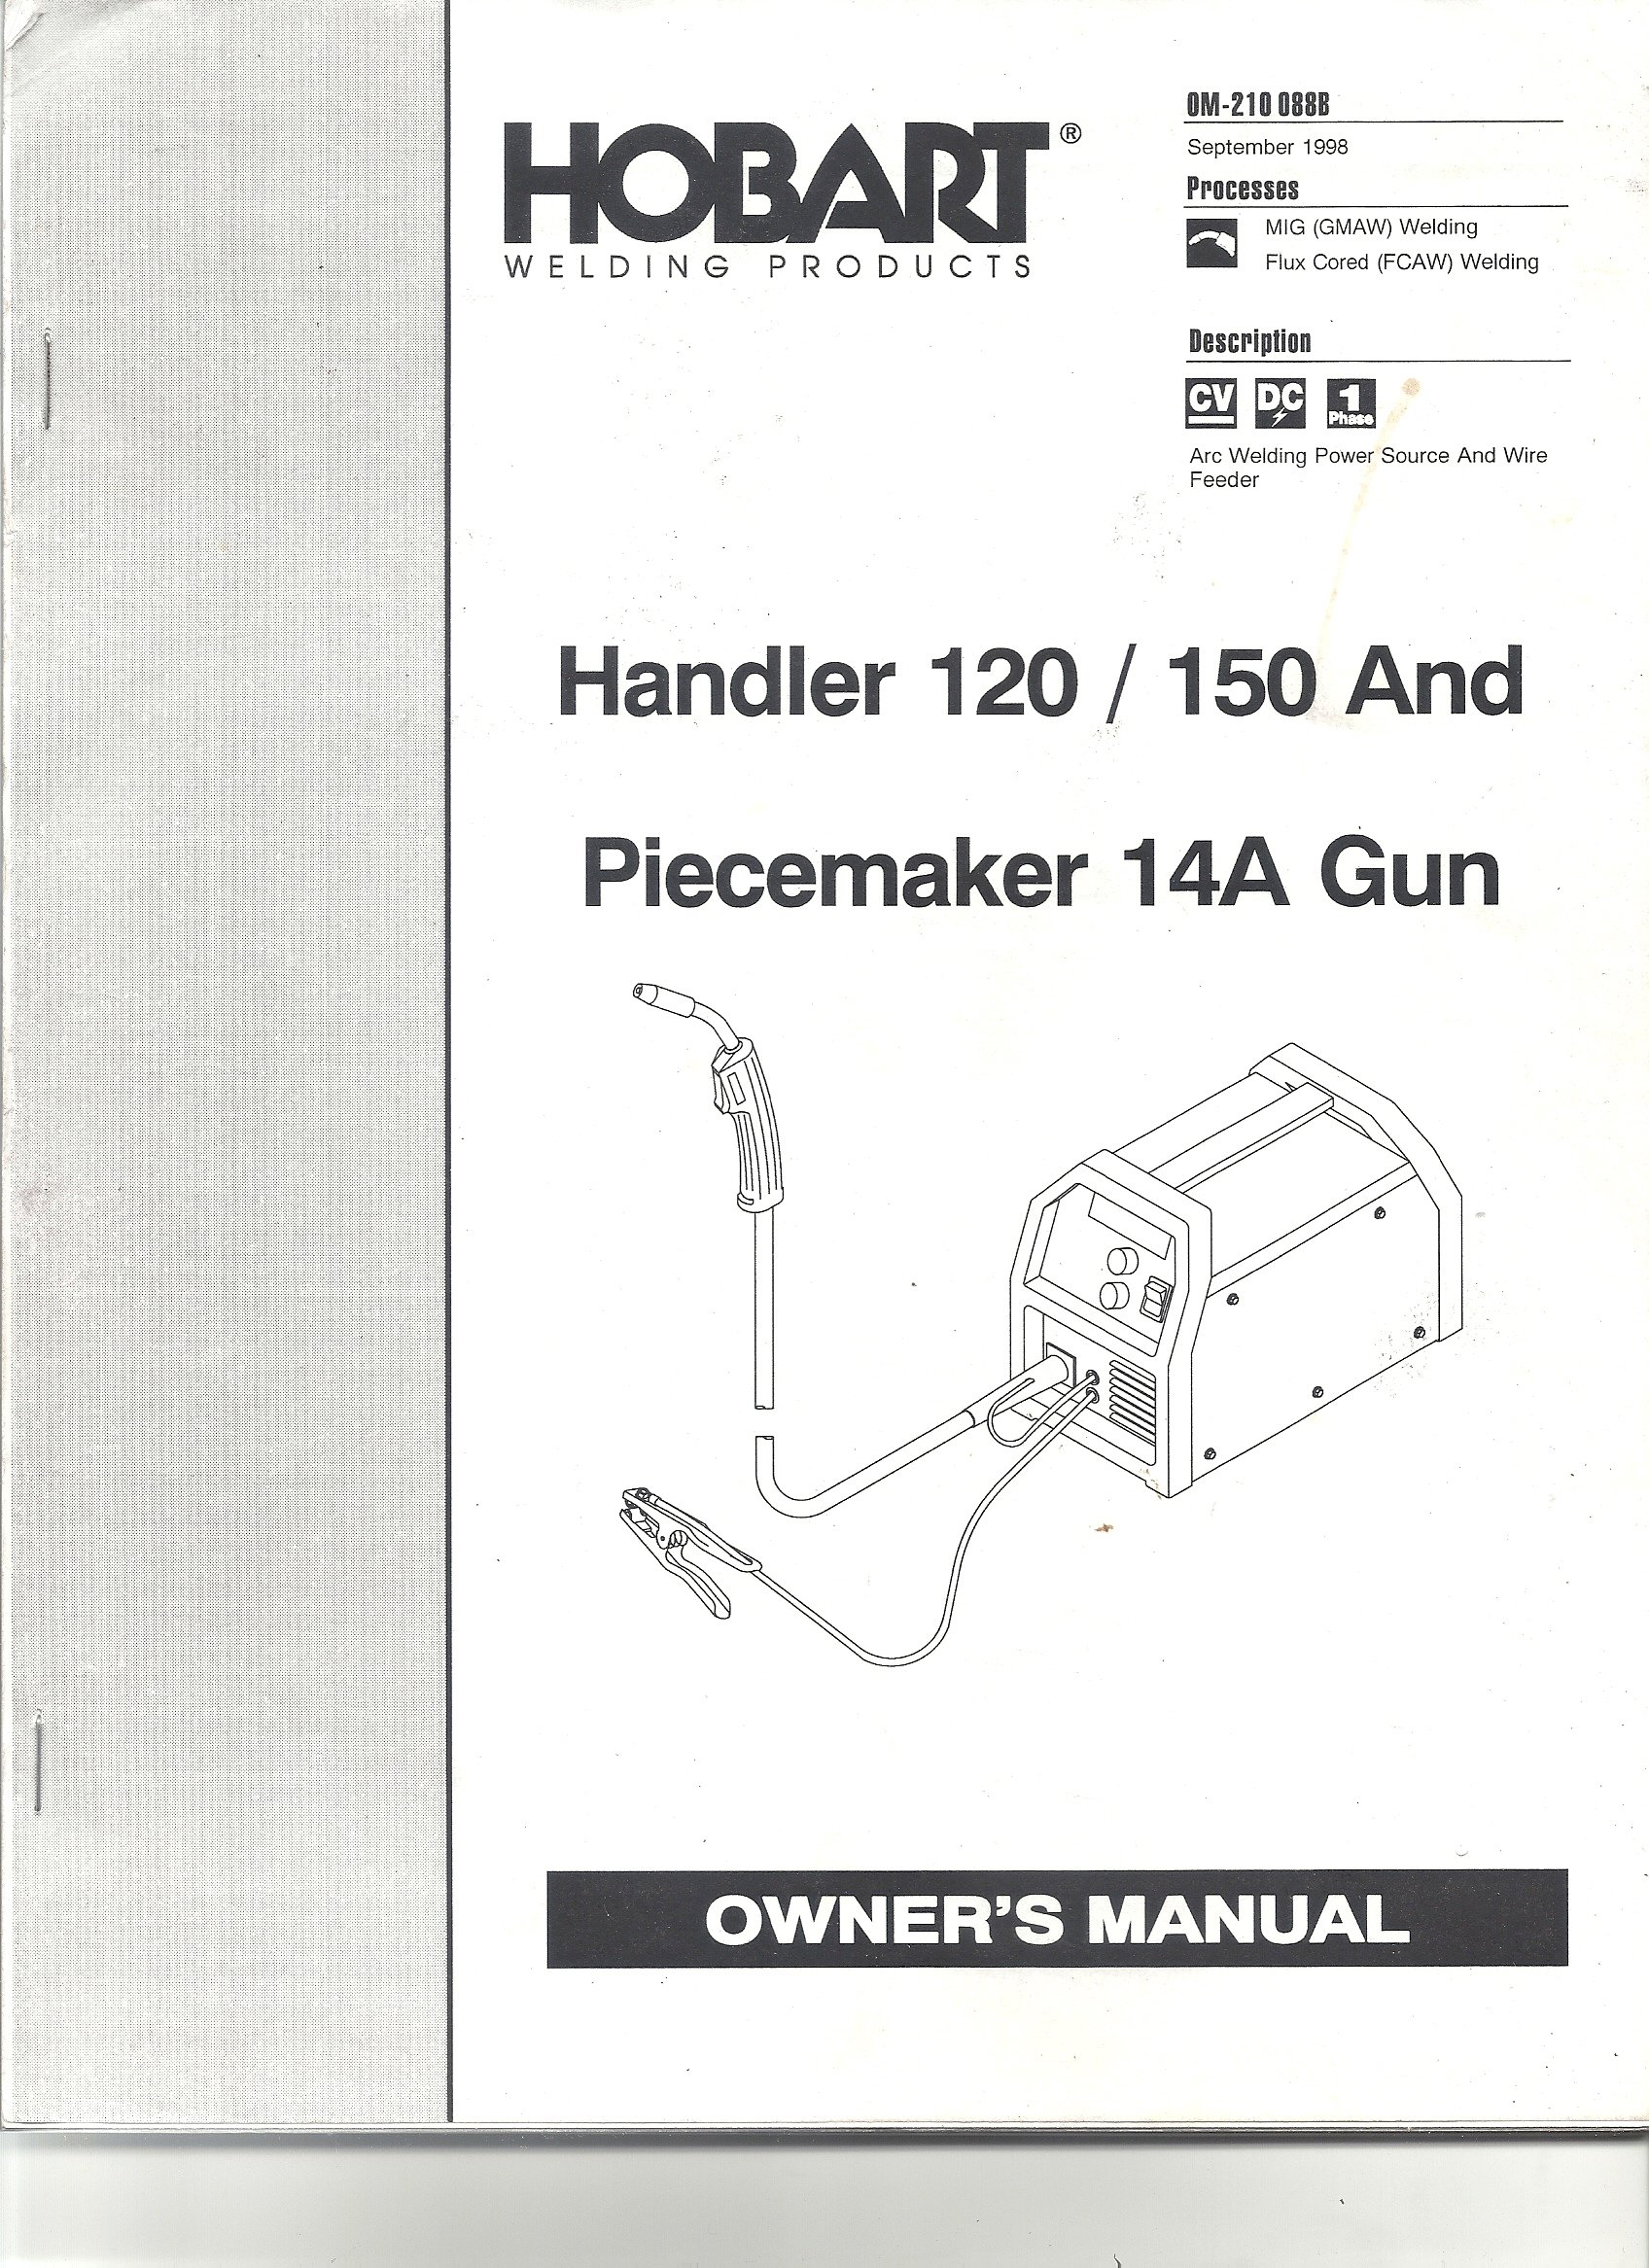 hobart welding products - handler 120/150 and piecemaker 14a gun (owner's  manual) staple bound – 1998